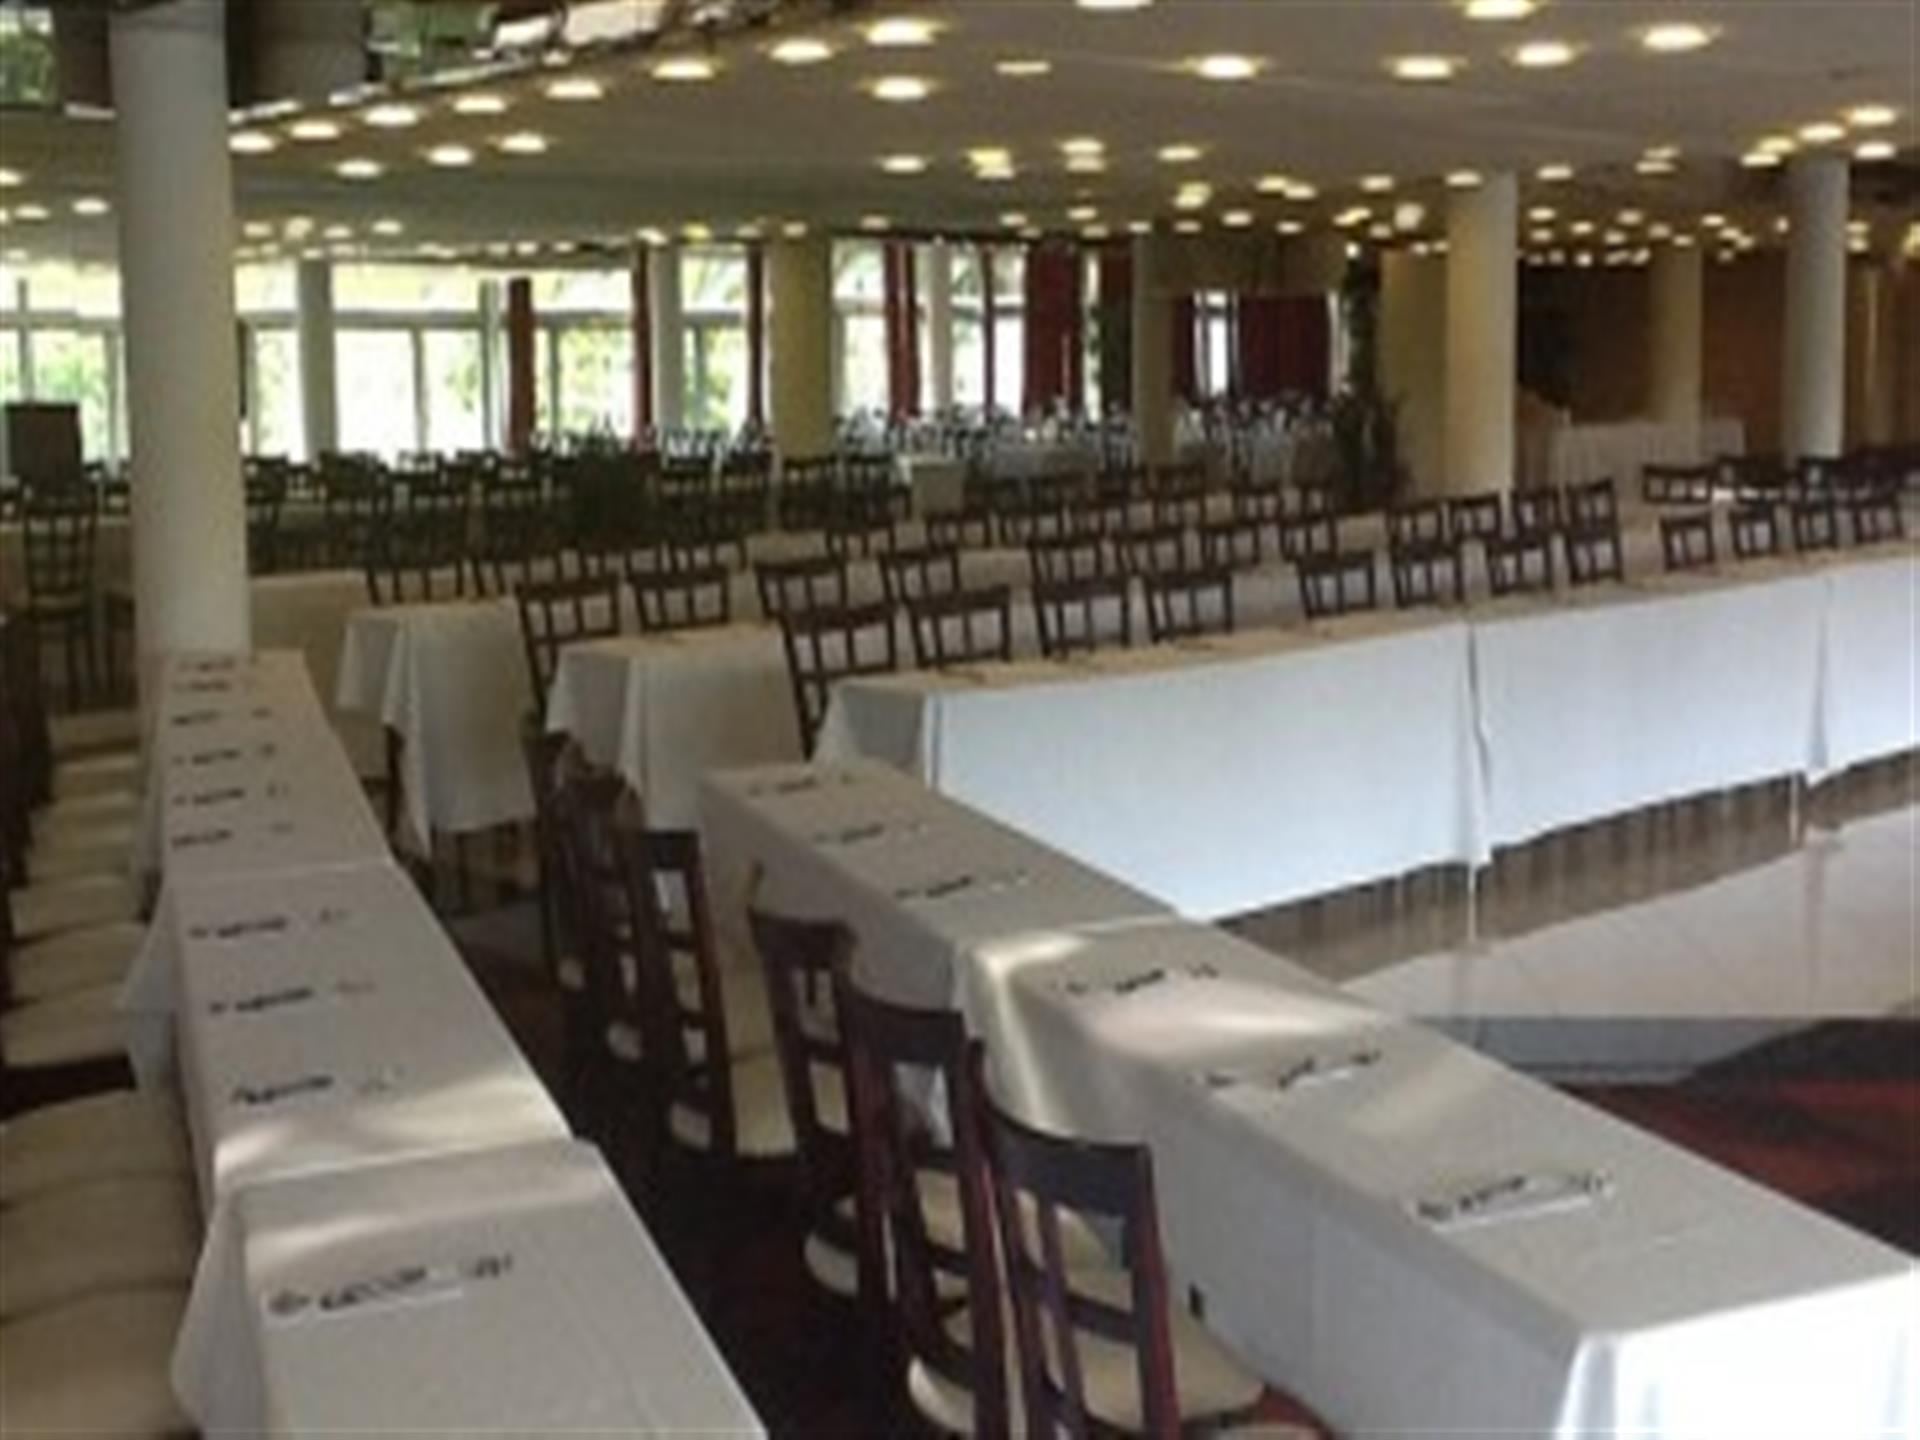 White clothed banquet tables with brown chairs